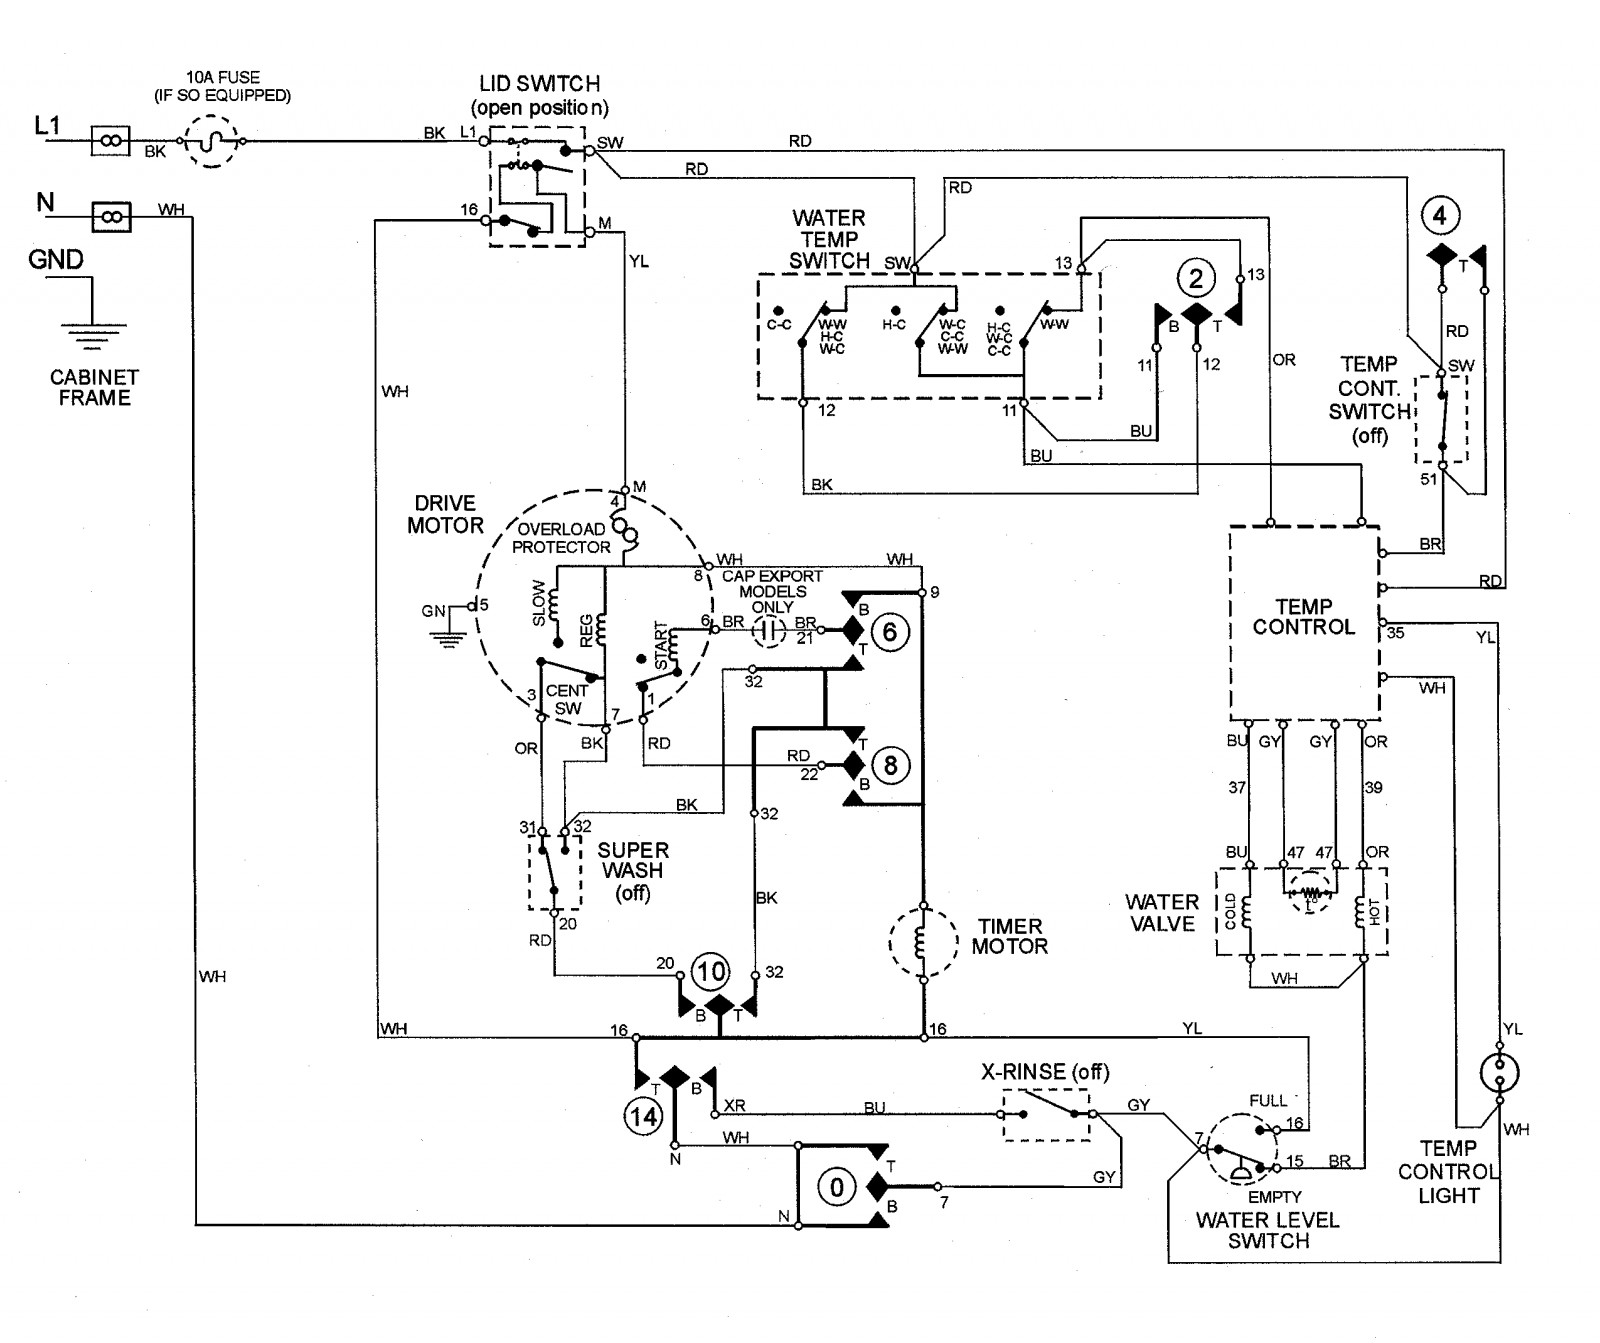 Ge Washer Motor Wiring Diagram In Addition Roper Electric Dryer Motors Diagrams General Induction Of